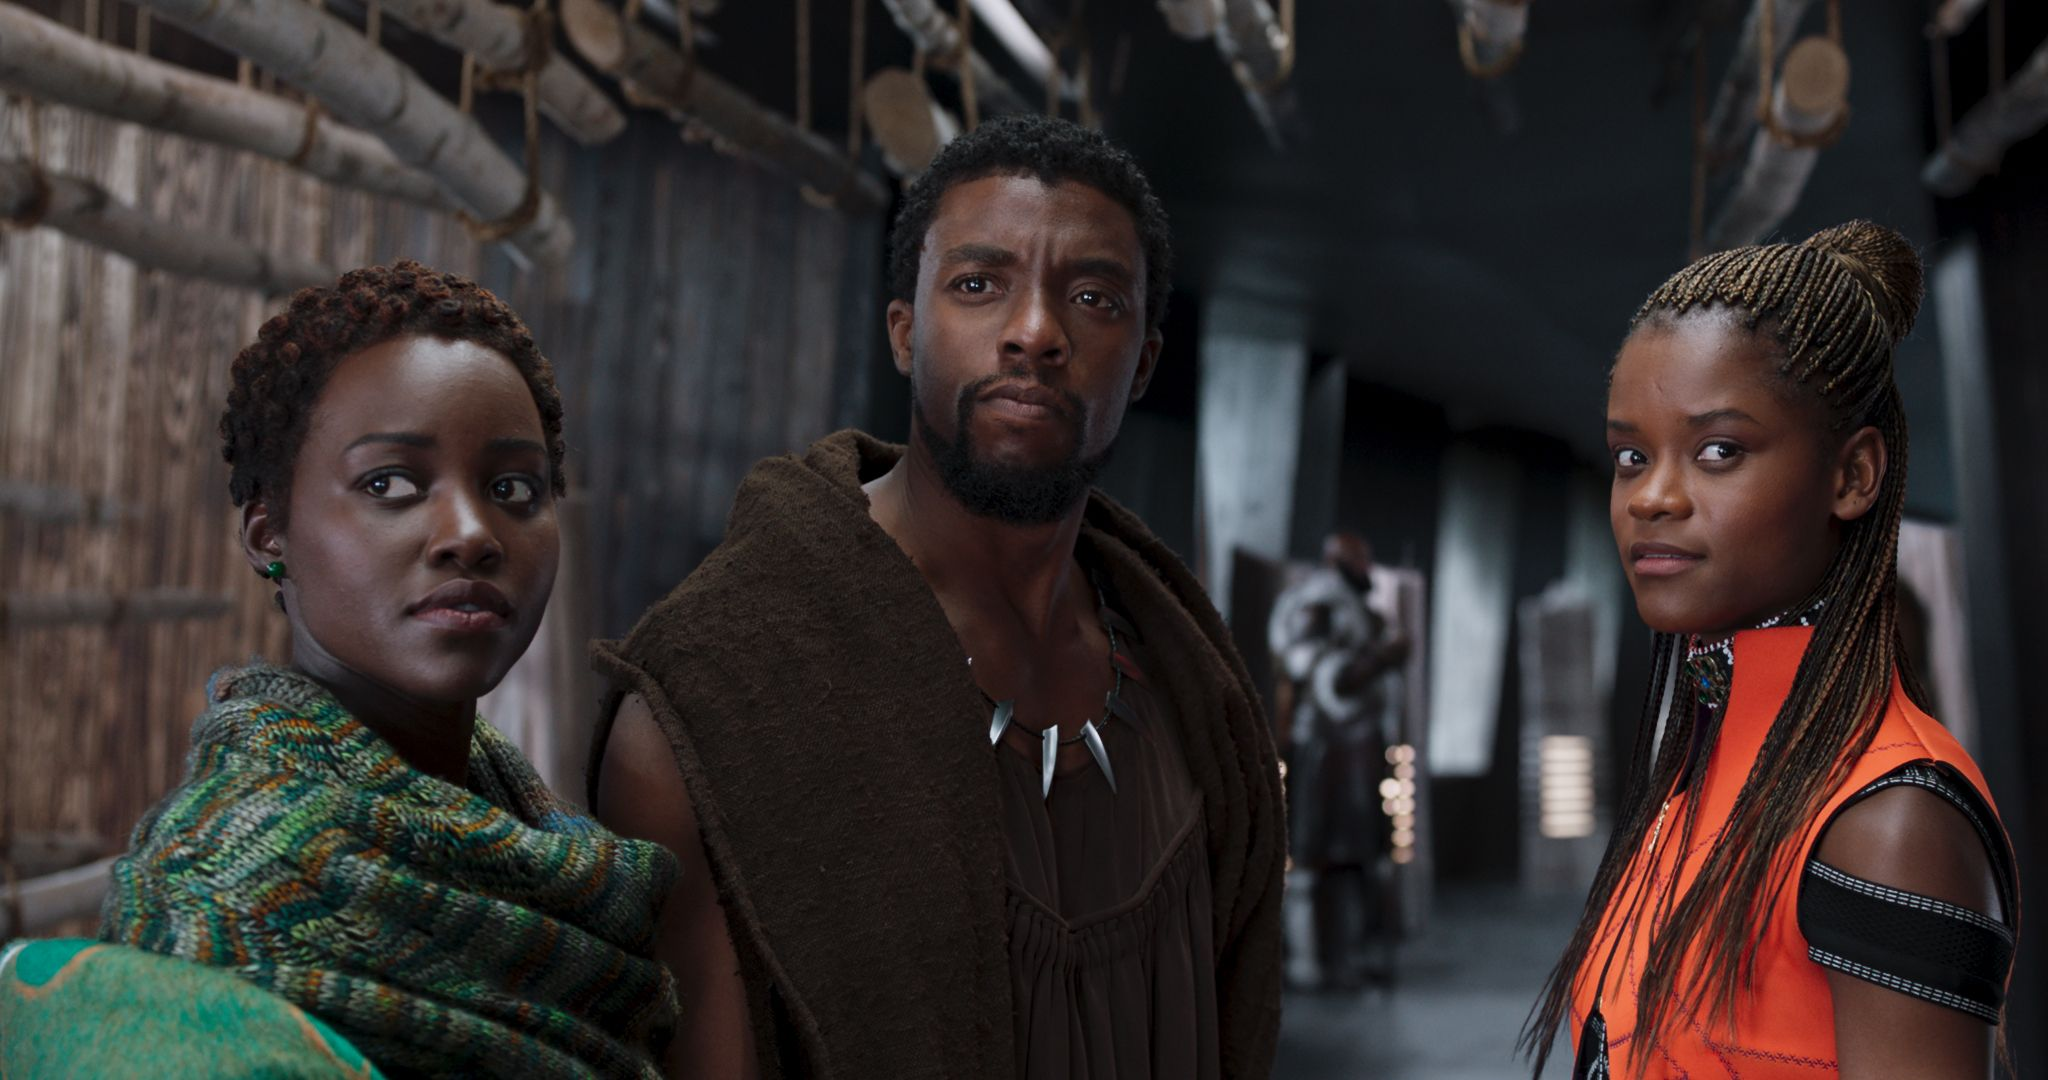 Weekend Box Office: 'Black Panther' Scores Massive $111.7M in Second Outing